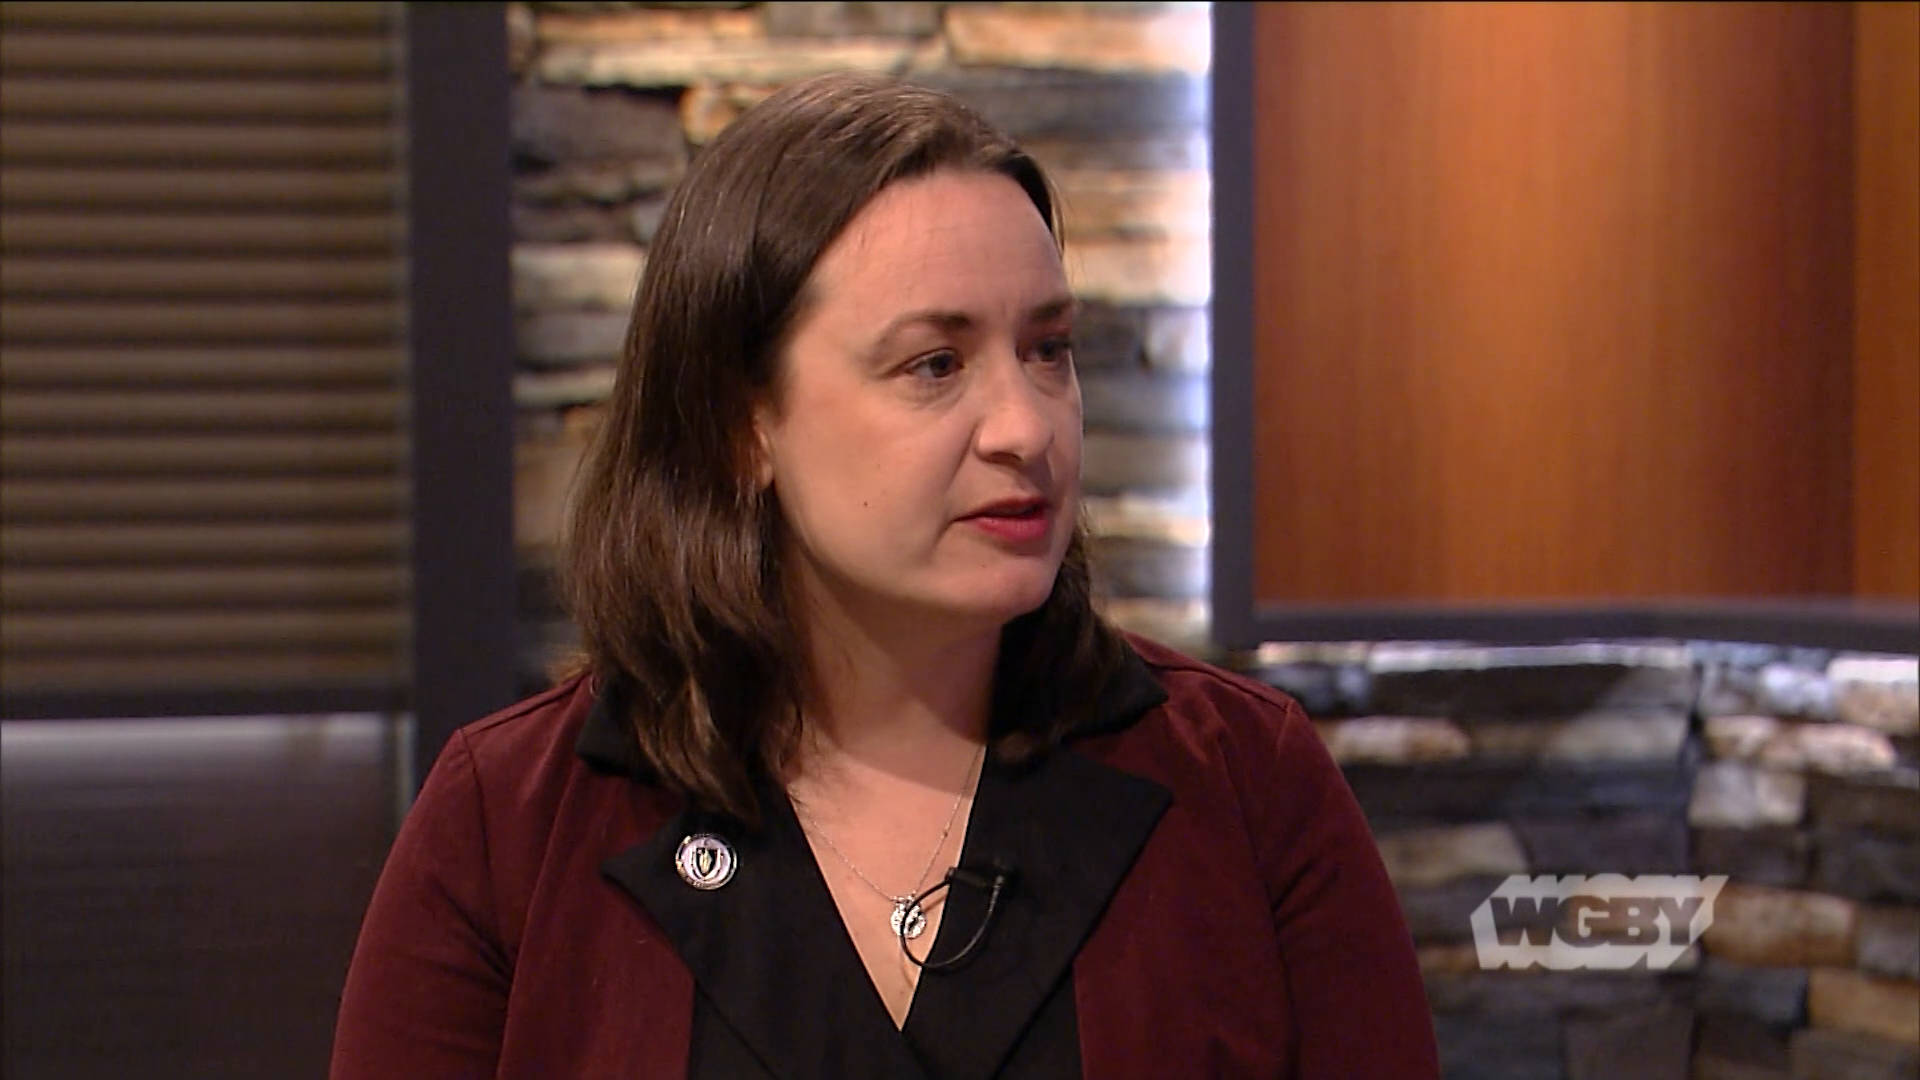 Massachusetts State Representative Lindsay Sabadosa discusses her proposed anti-harassment bill and why such legislation is needed in the #metoo era.